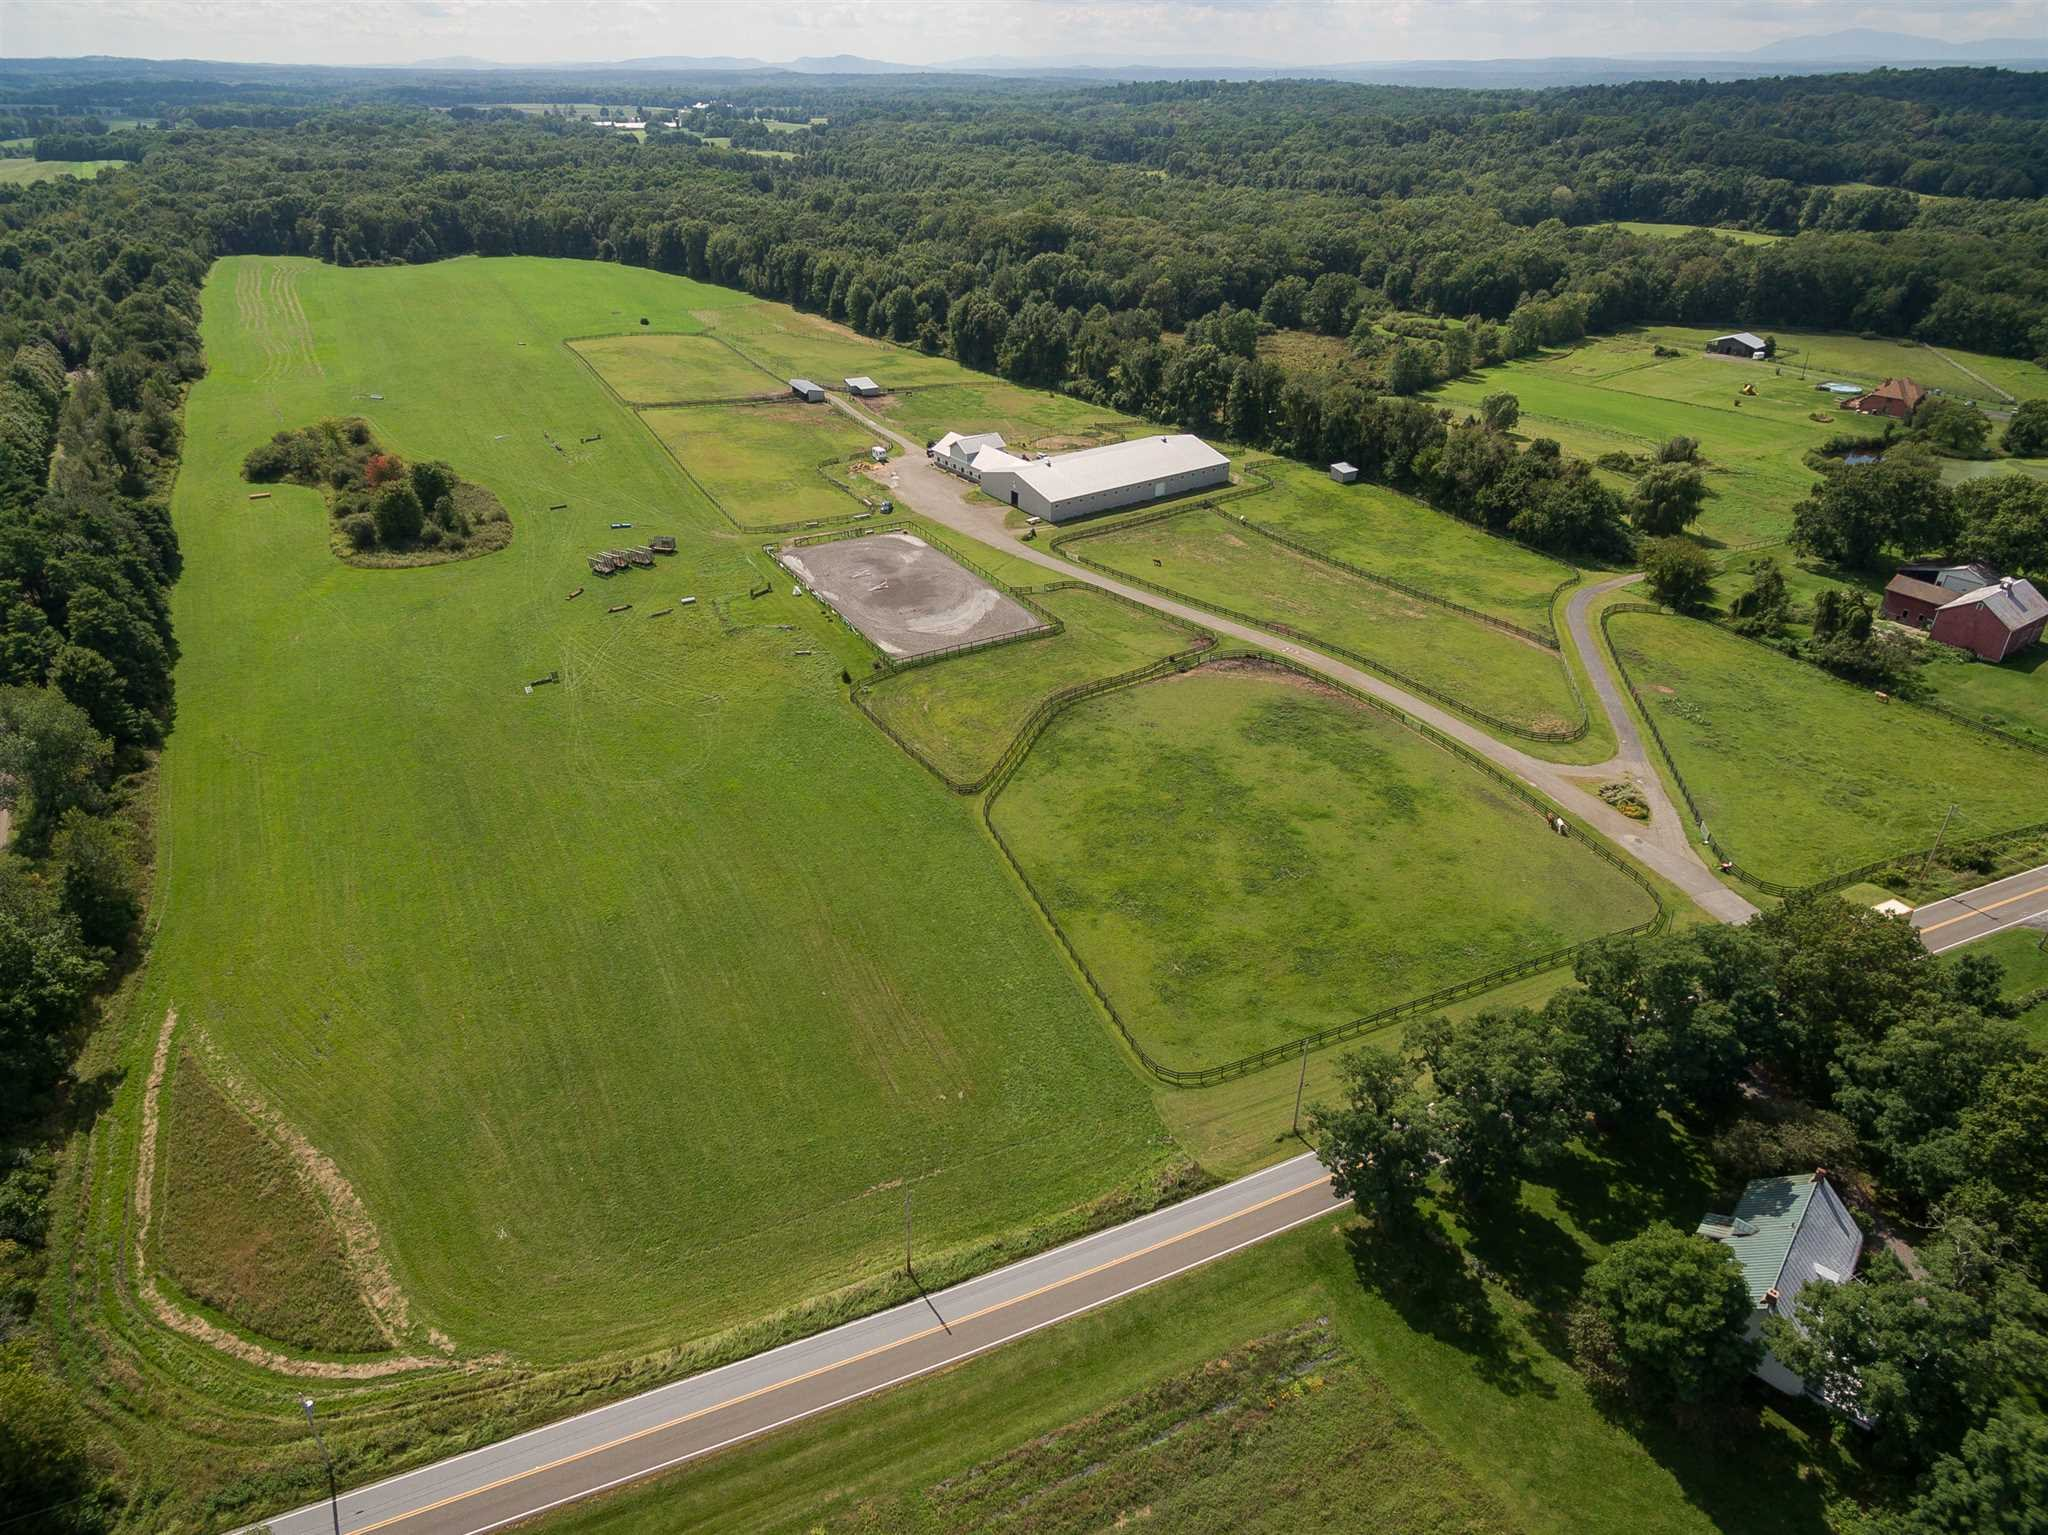 Land for Sale at 430 KERLEY CORNERS Road 430 KERLEY CORNERS Road Red Hook, New York 12583 United States